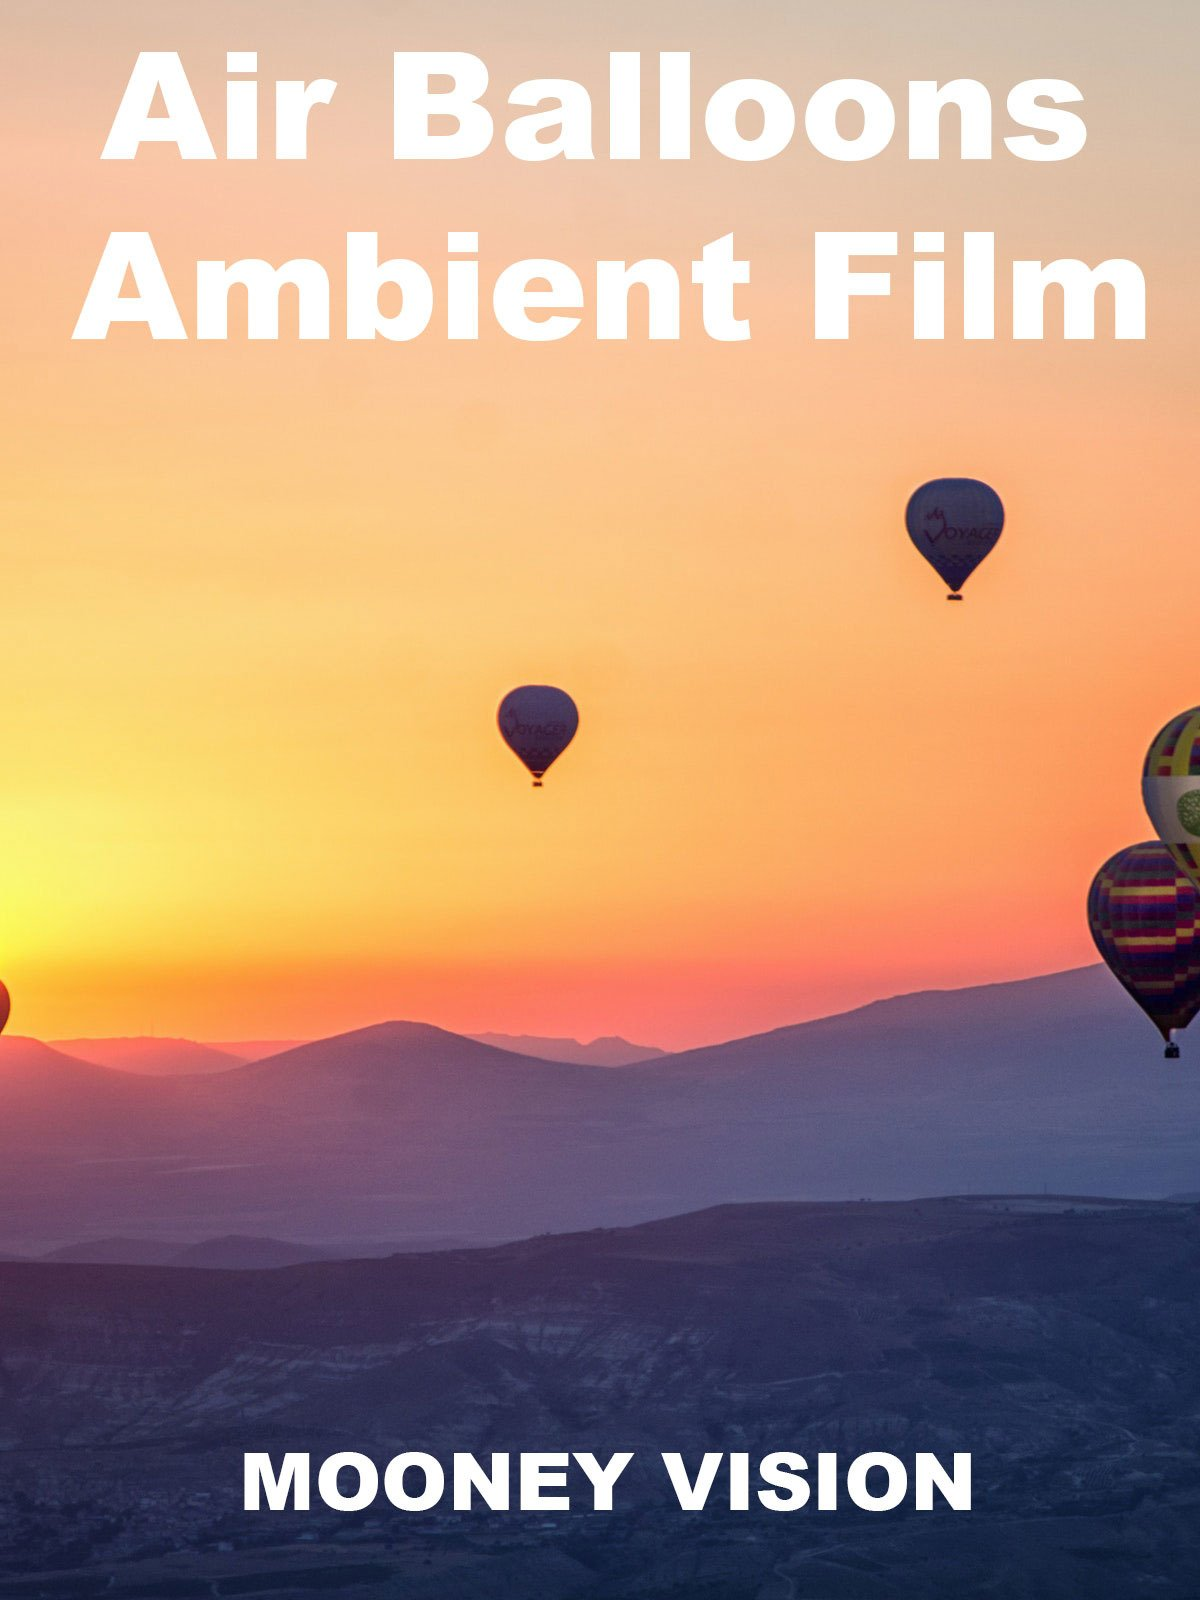 Air Balloons Ambient Film